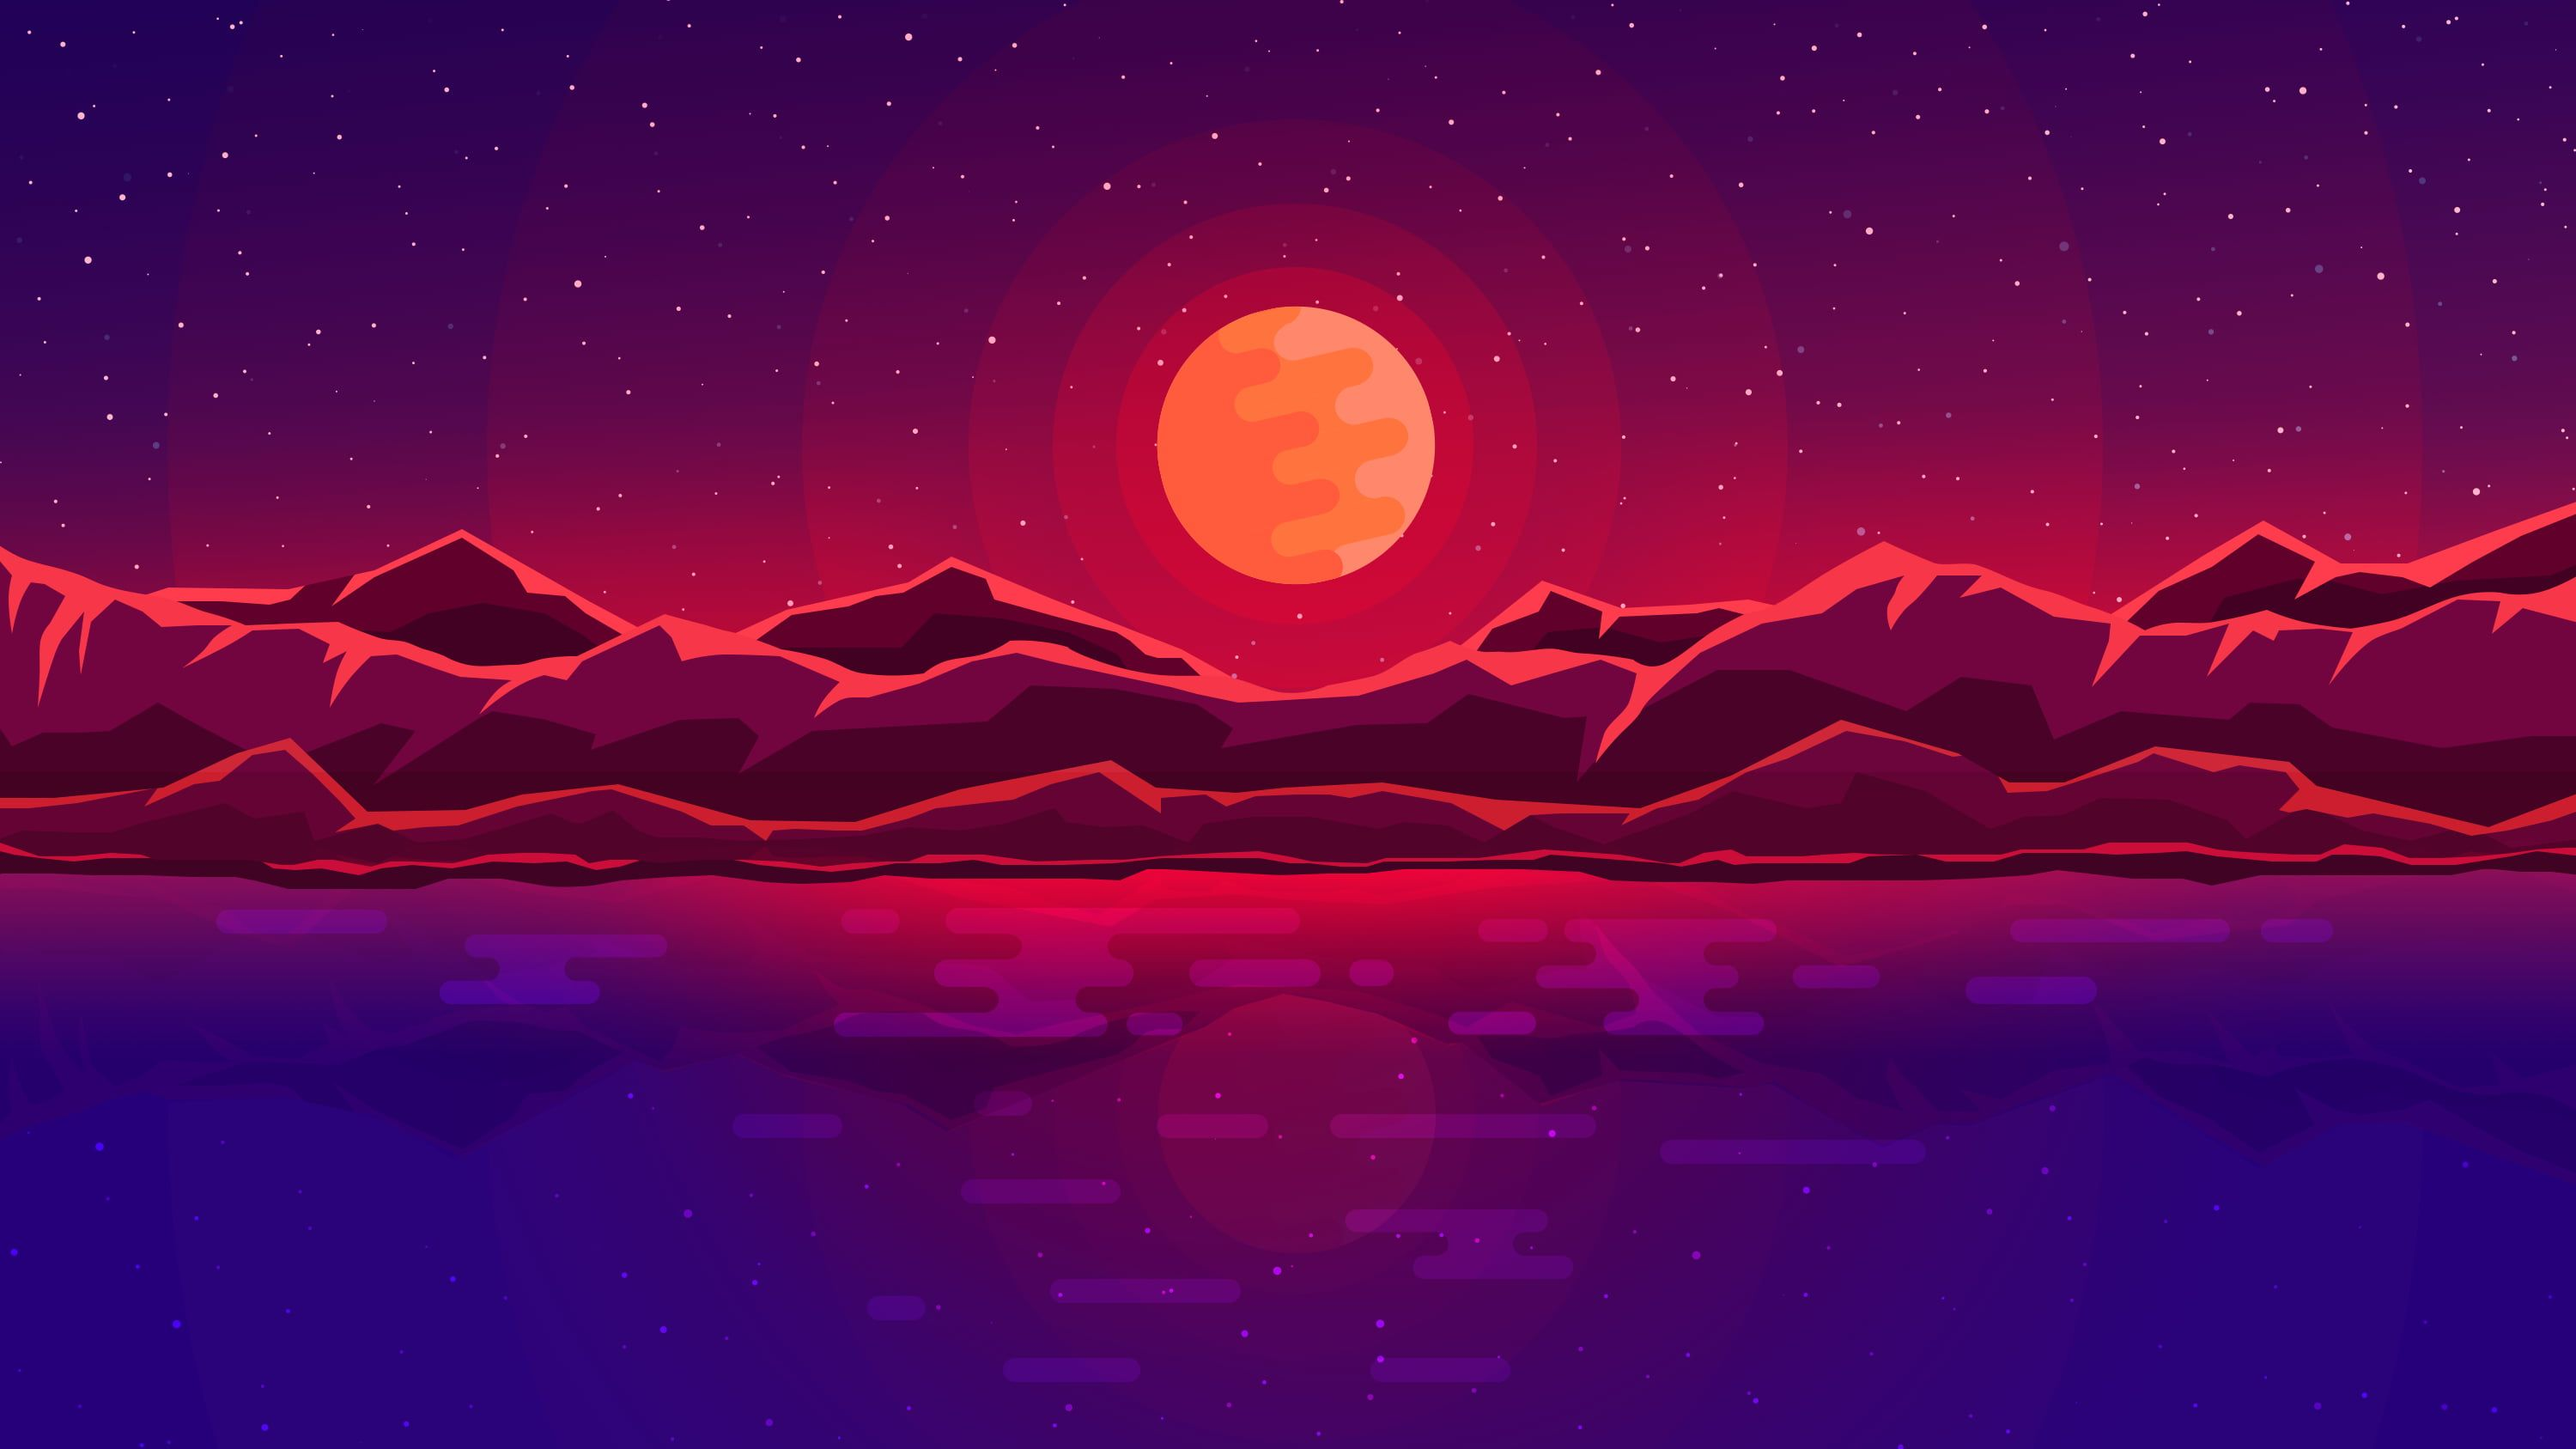 Red Moon With Mountain Wallpaper Body Of Water During Night Illustration Digital Art Space In 2020 Minimalist Desktop Wallpaper Digital Wallpaper Abstract Wallpaper